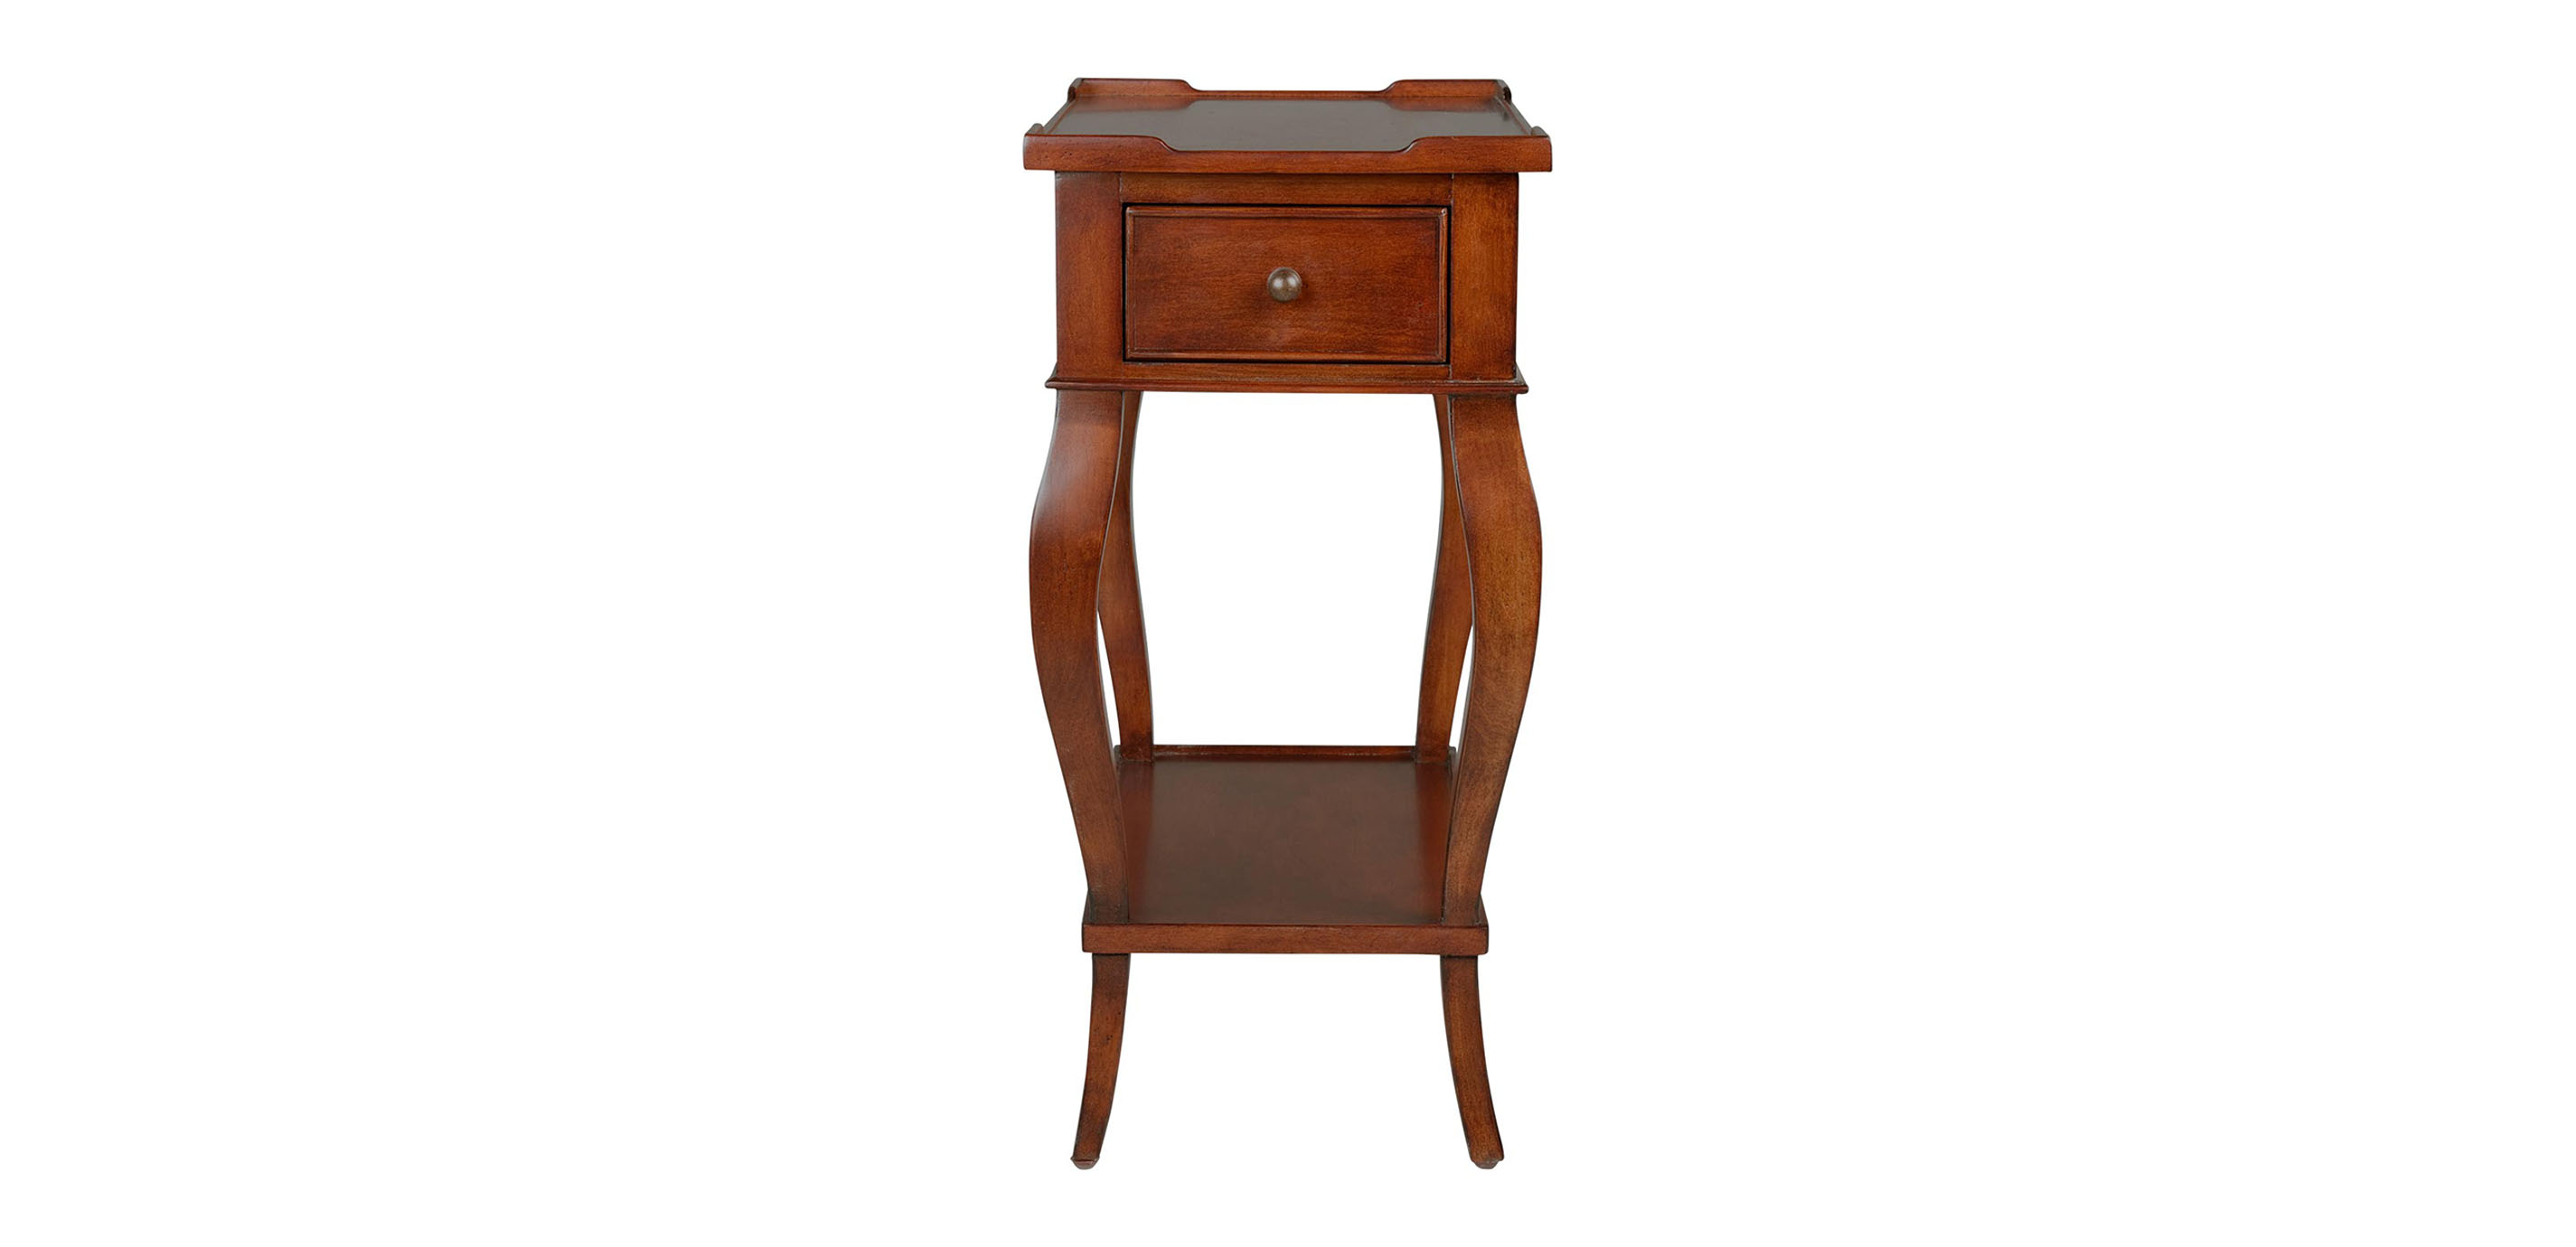 Images Marc Accent Table     large grayMarc Accent Table   Accent Tables. Ethan Allen Living Room Accent Chairs. Home Design Ideas